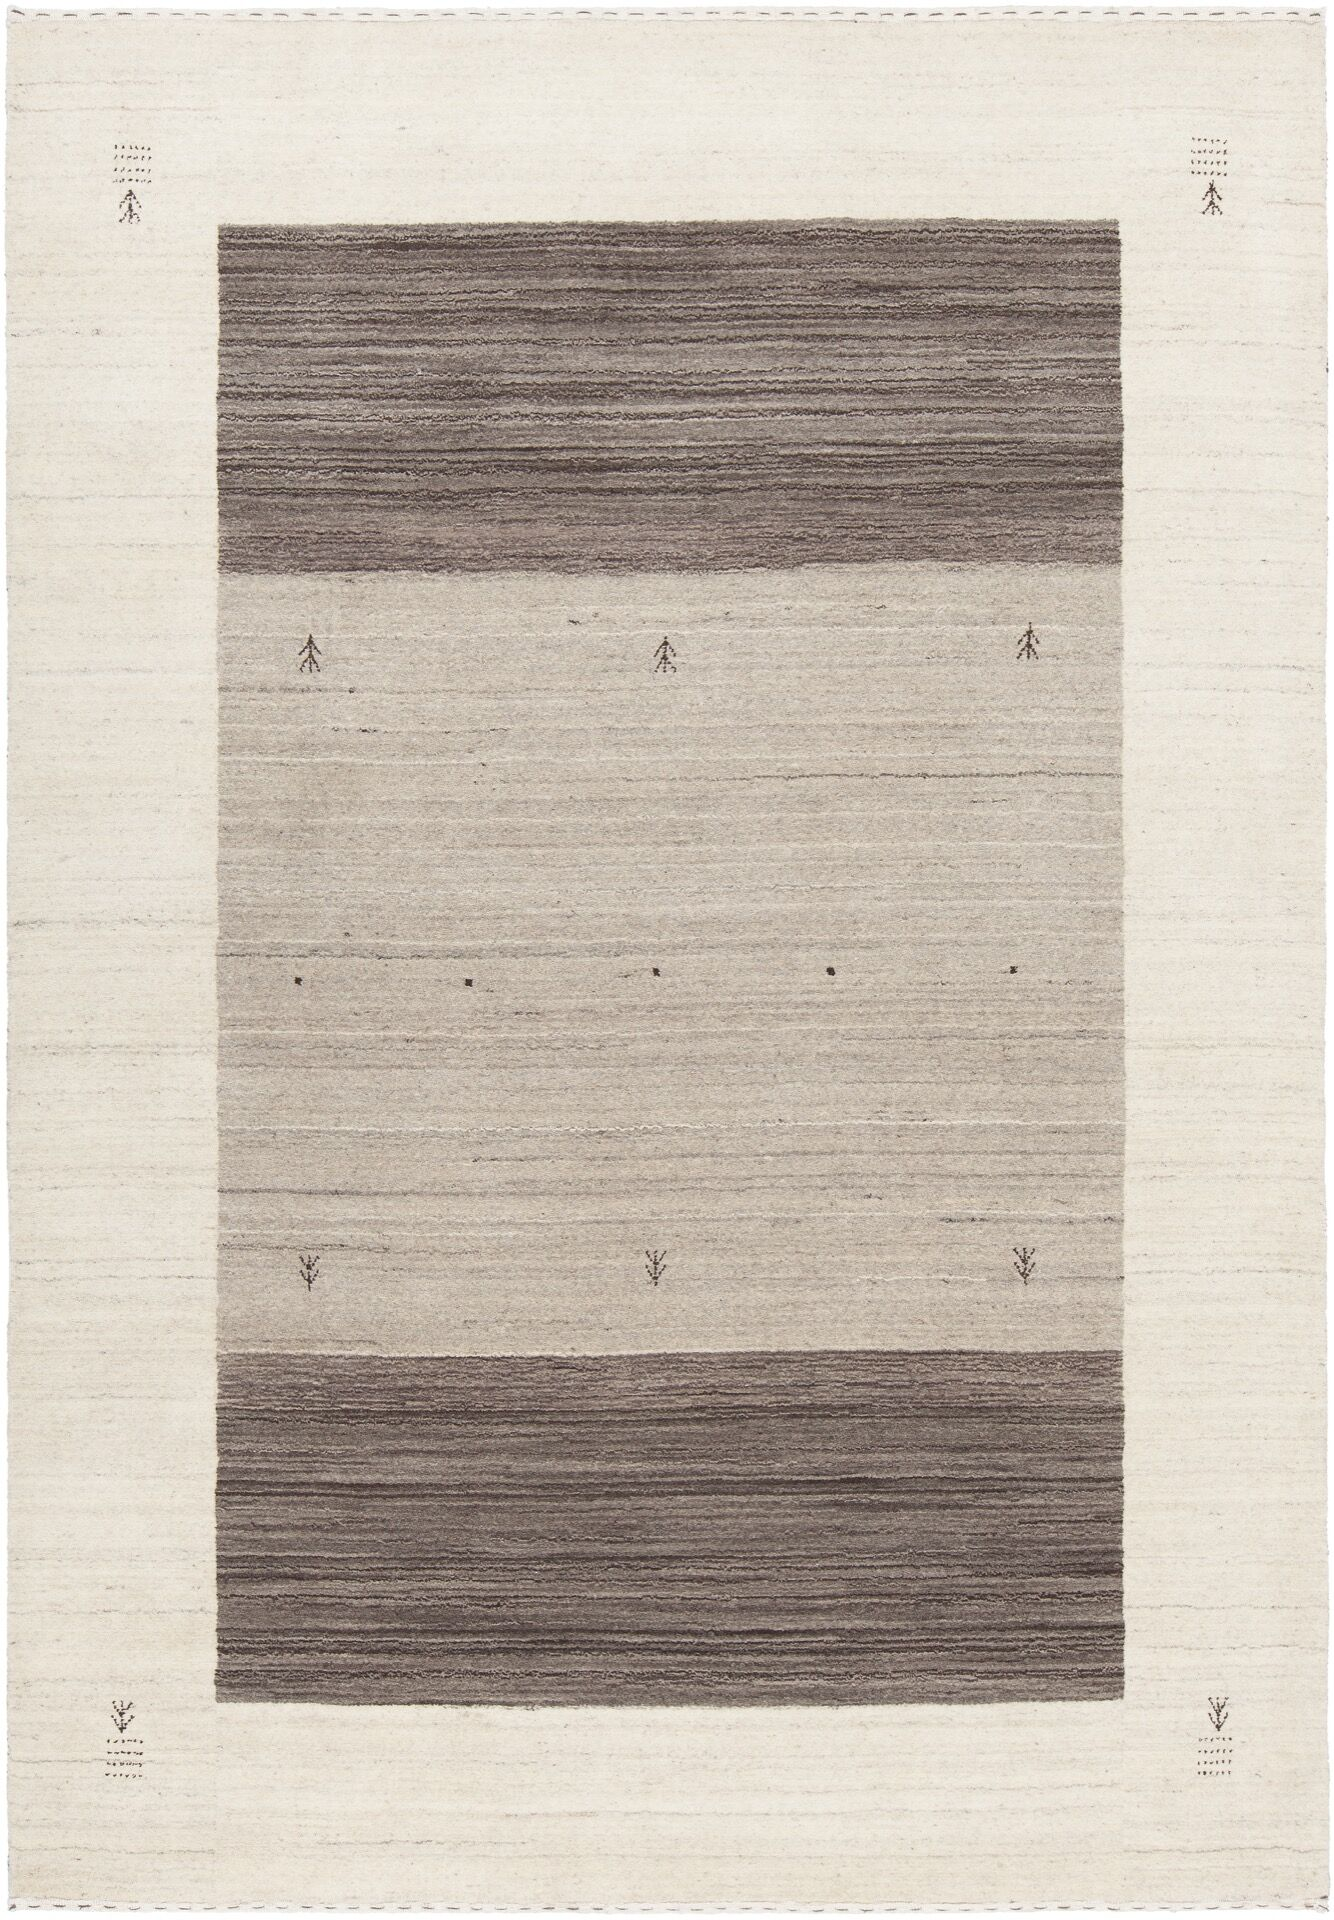 Roxanne Hand-Knotted Wool Cream/Brown Area Rug Rug Size: 9' x 13'